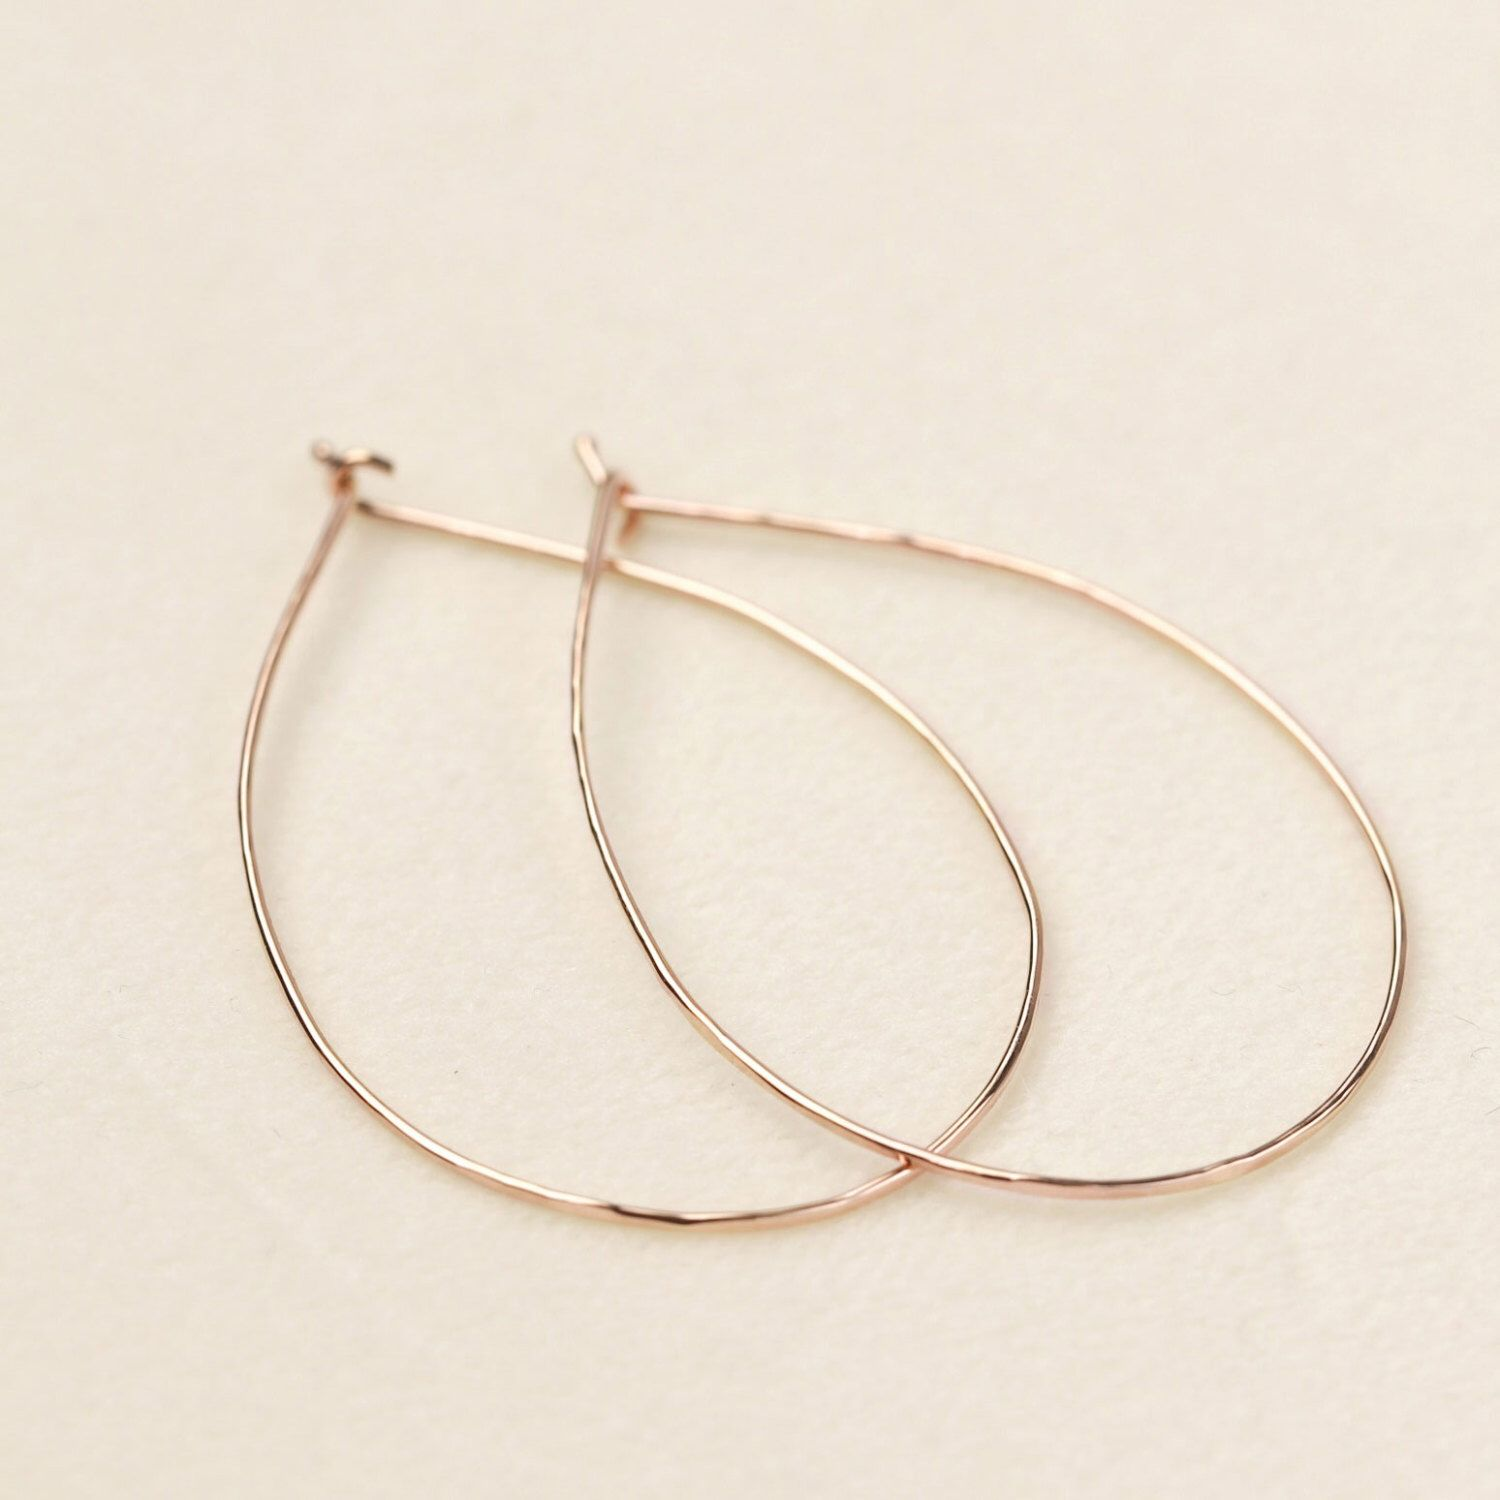 Rose gold hammered wire hoop earrings, 0.75mm wire, classic hammer ...